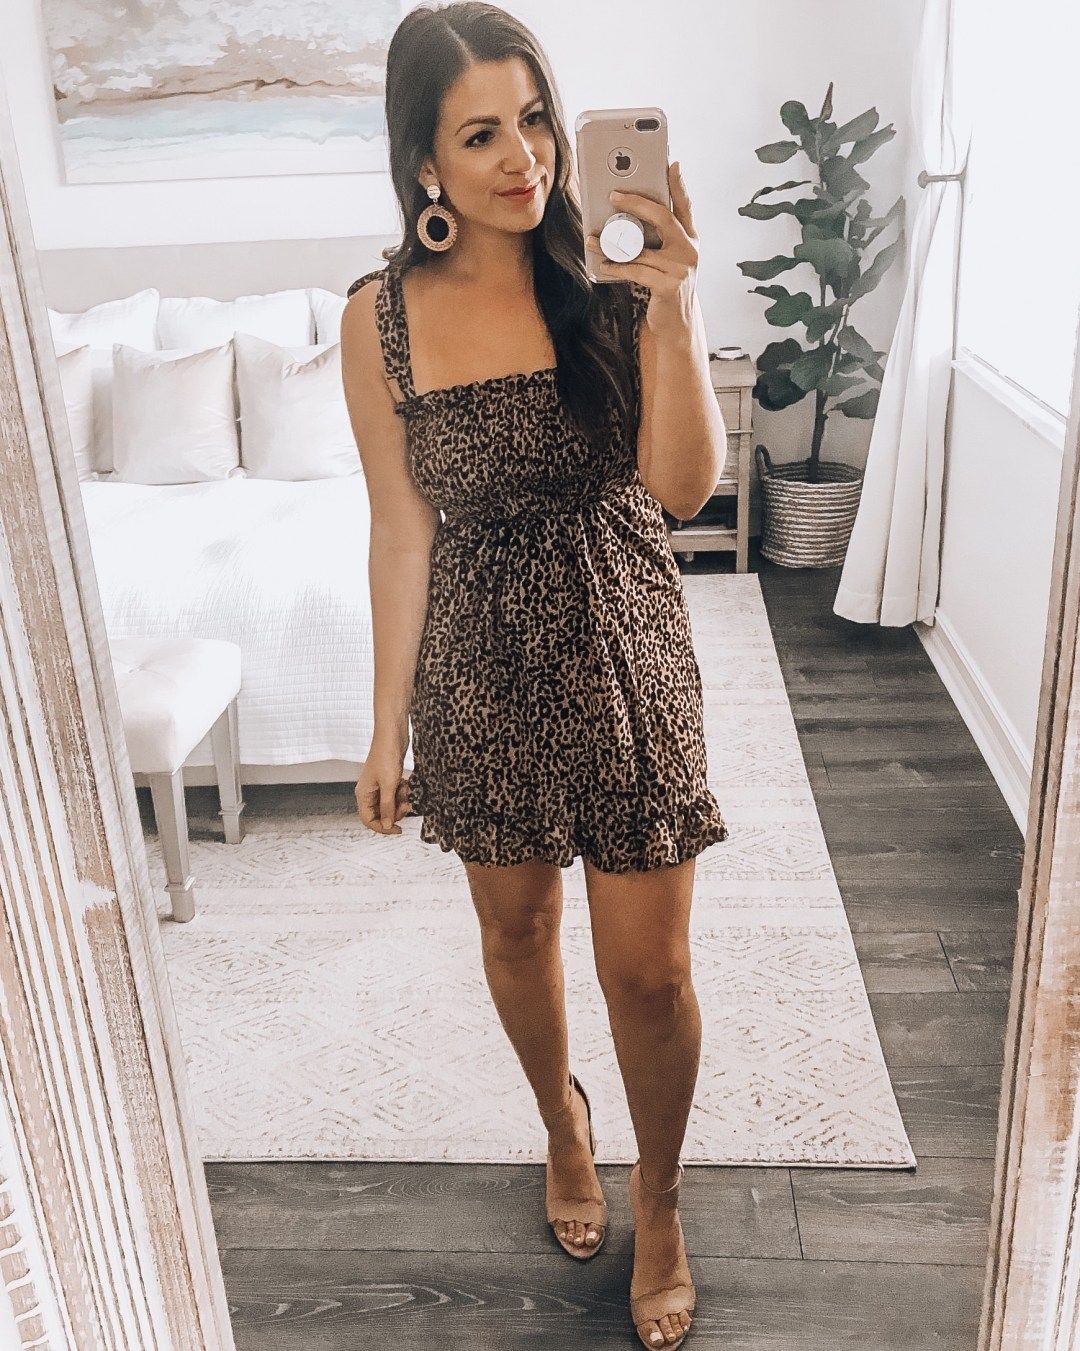 Amazon leopard mini dress, leopard mini dress, Jaime Cittadino of Sunflowers and Stilettos, Amazon Fashion dress